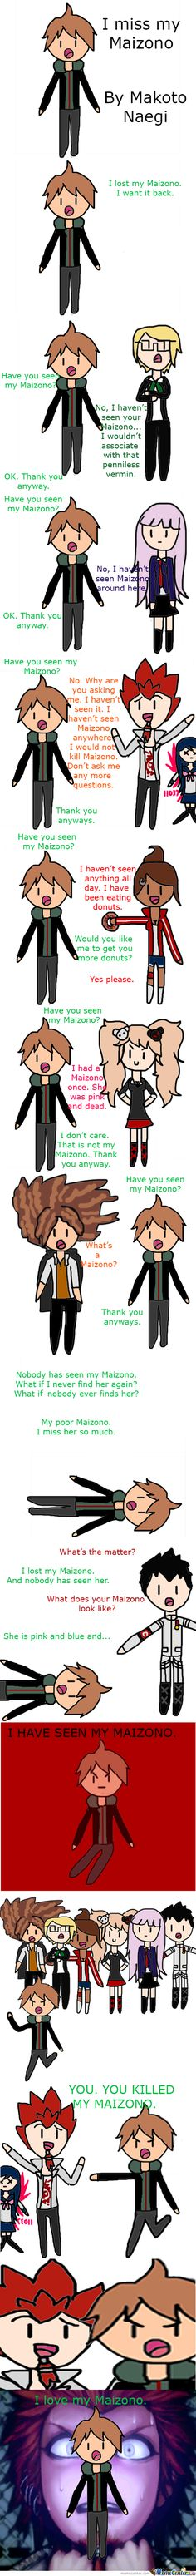 Pretty much the entire first chapter of Dangan Ronpa